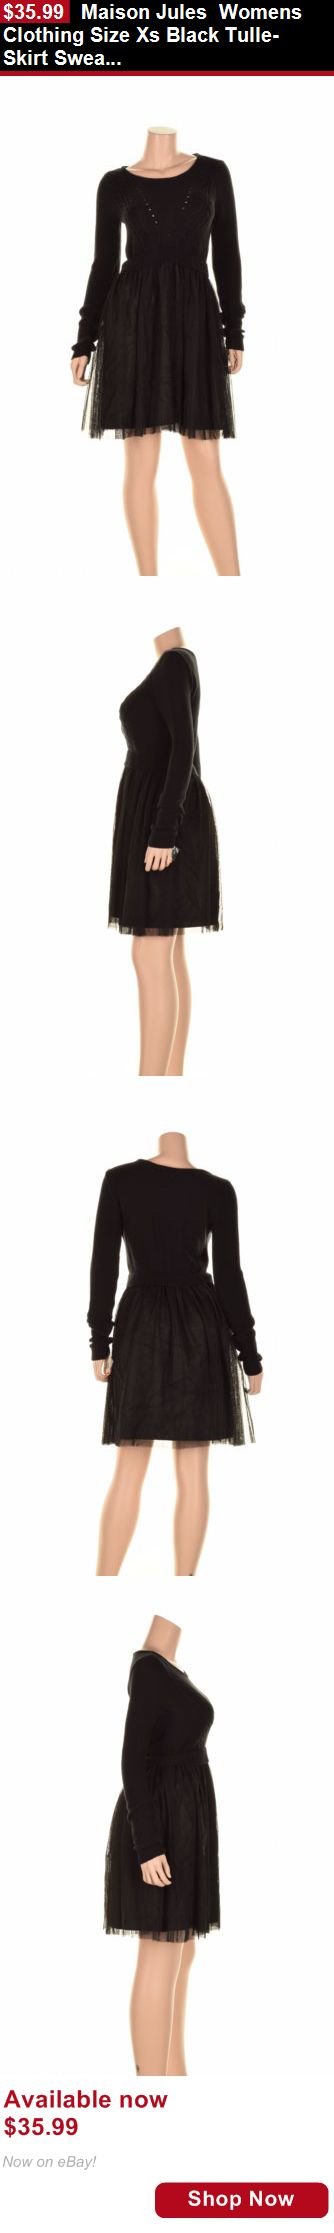 Women vintage reproductions: Maison Jules Womens Clothing Size Xs Black Tulle-Skirt Sweater Dress New BUY IT NOW ONLY: $35.99